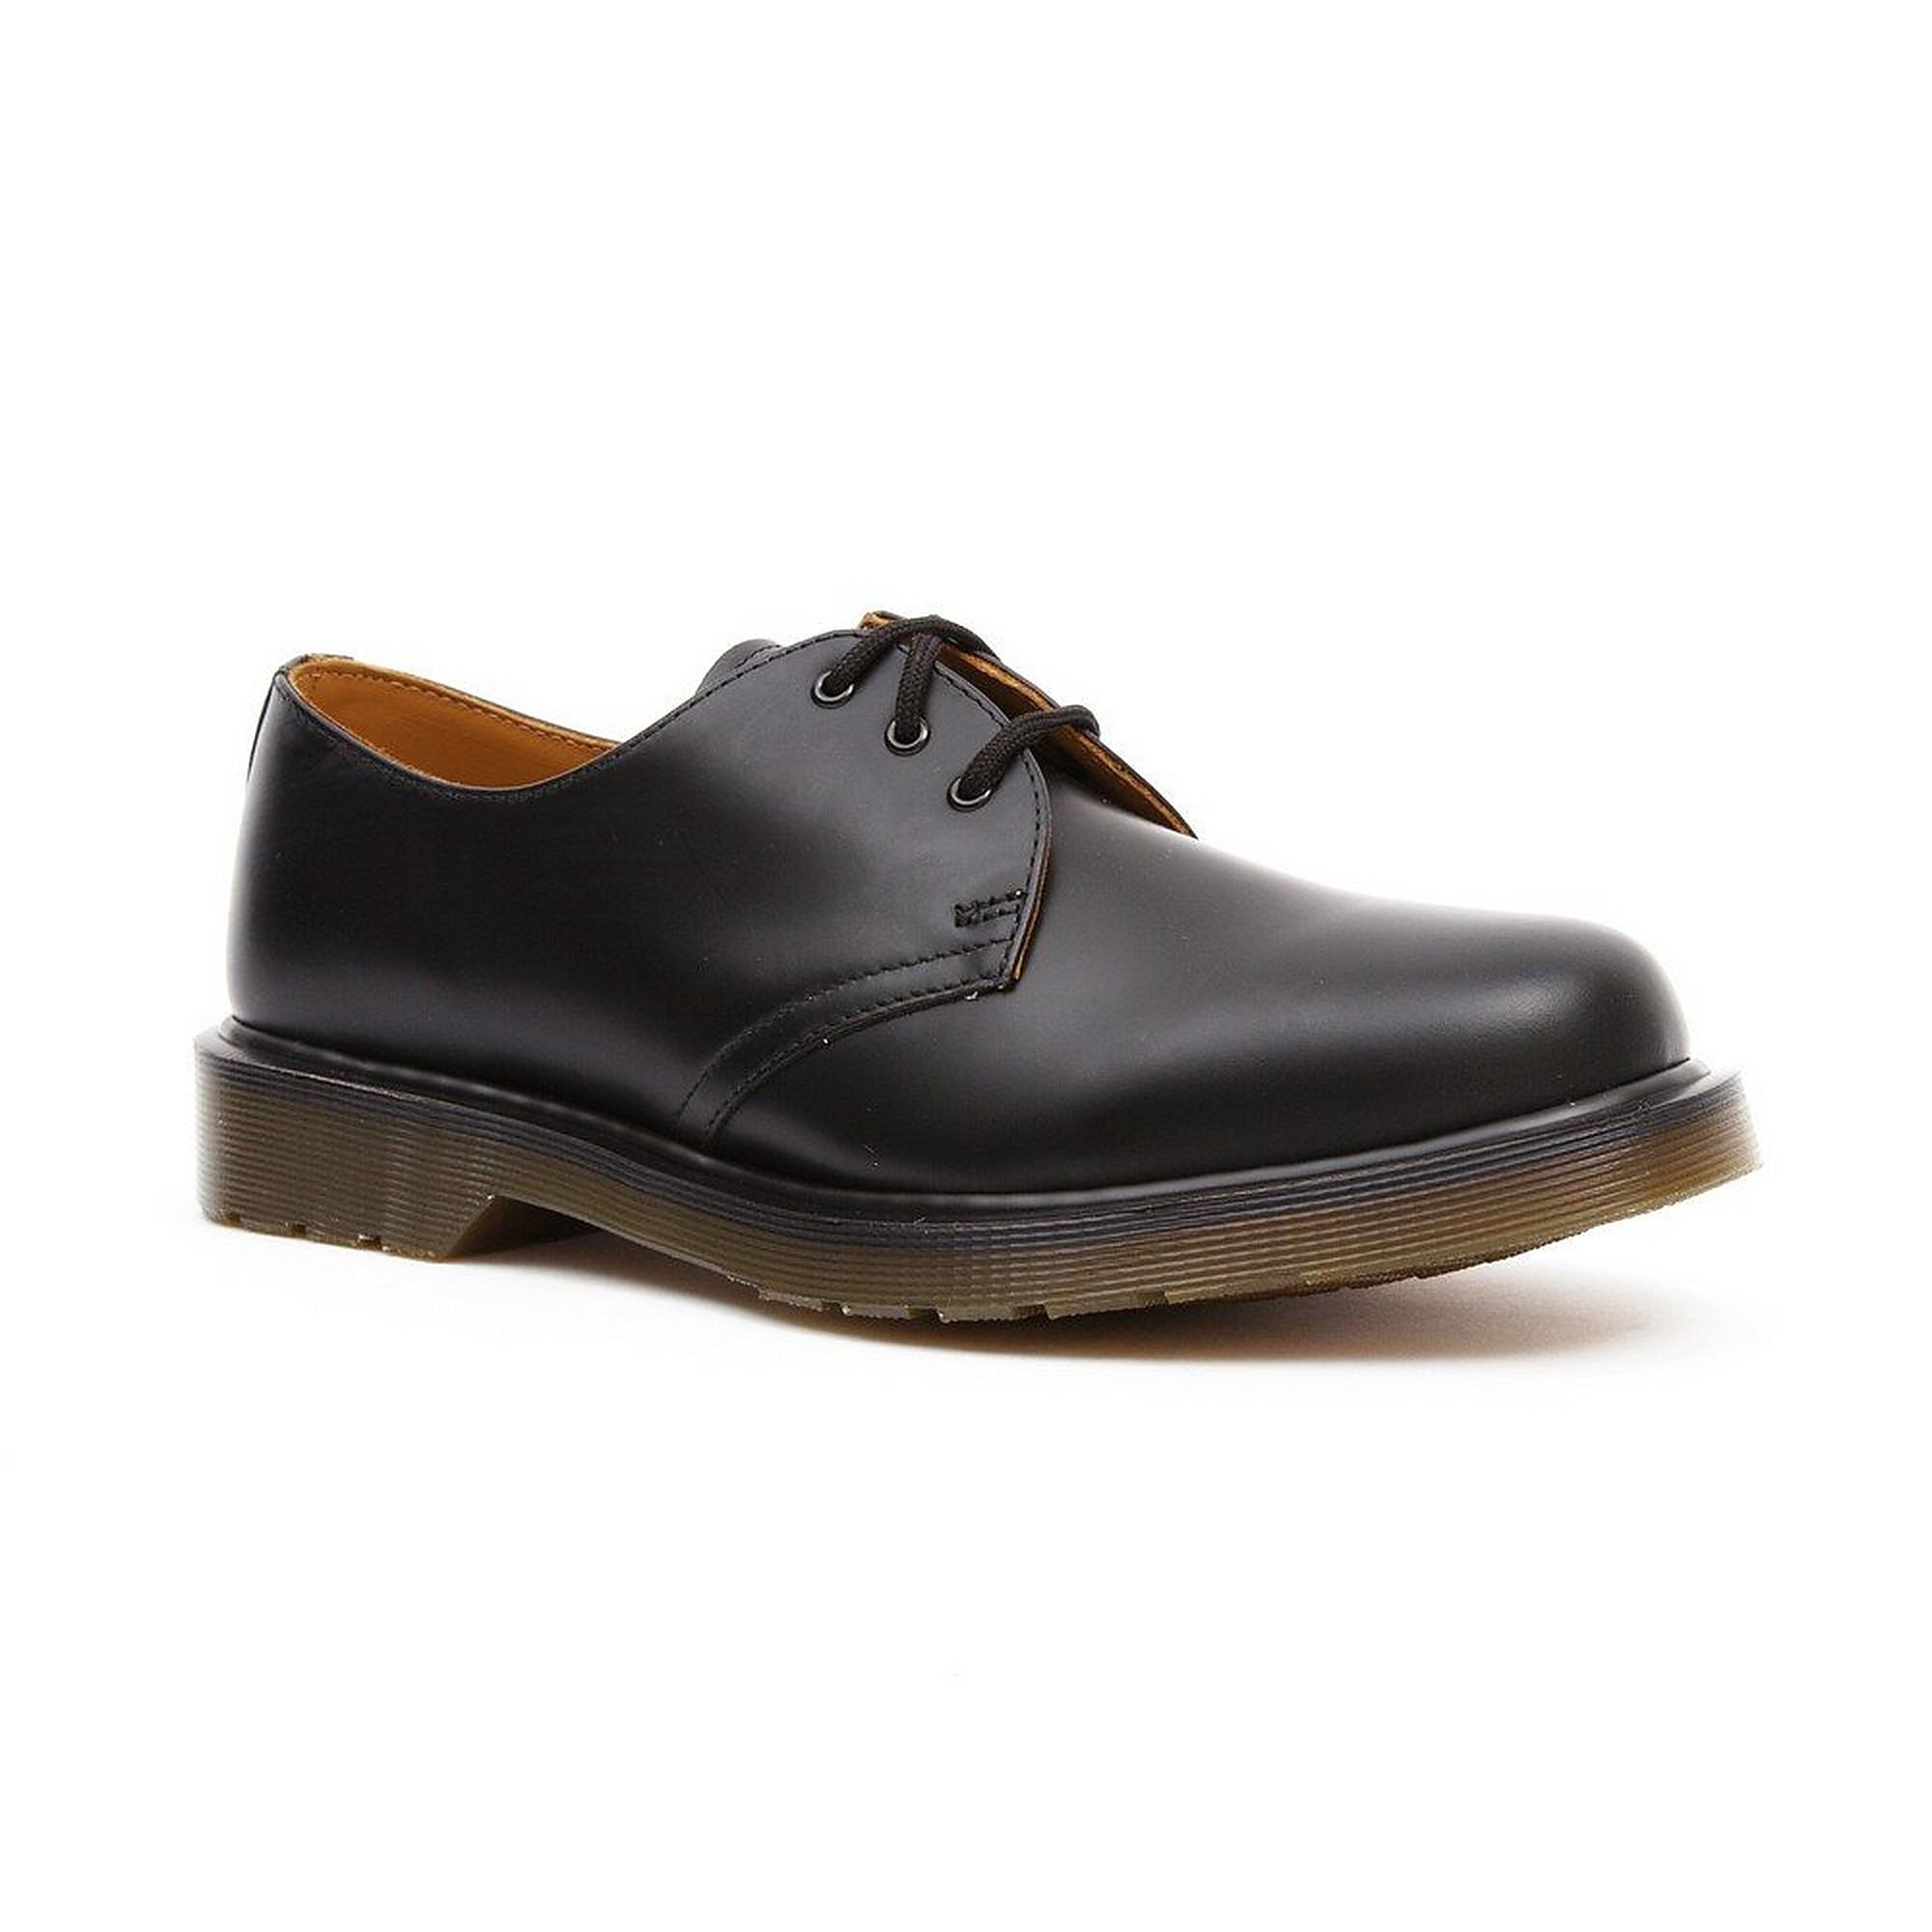 Dr Martens Men's Gibson 1461-9 Leather Shoes - Smooth Black